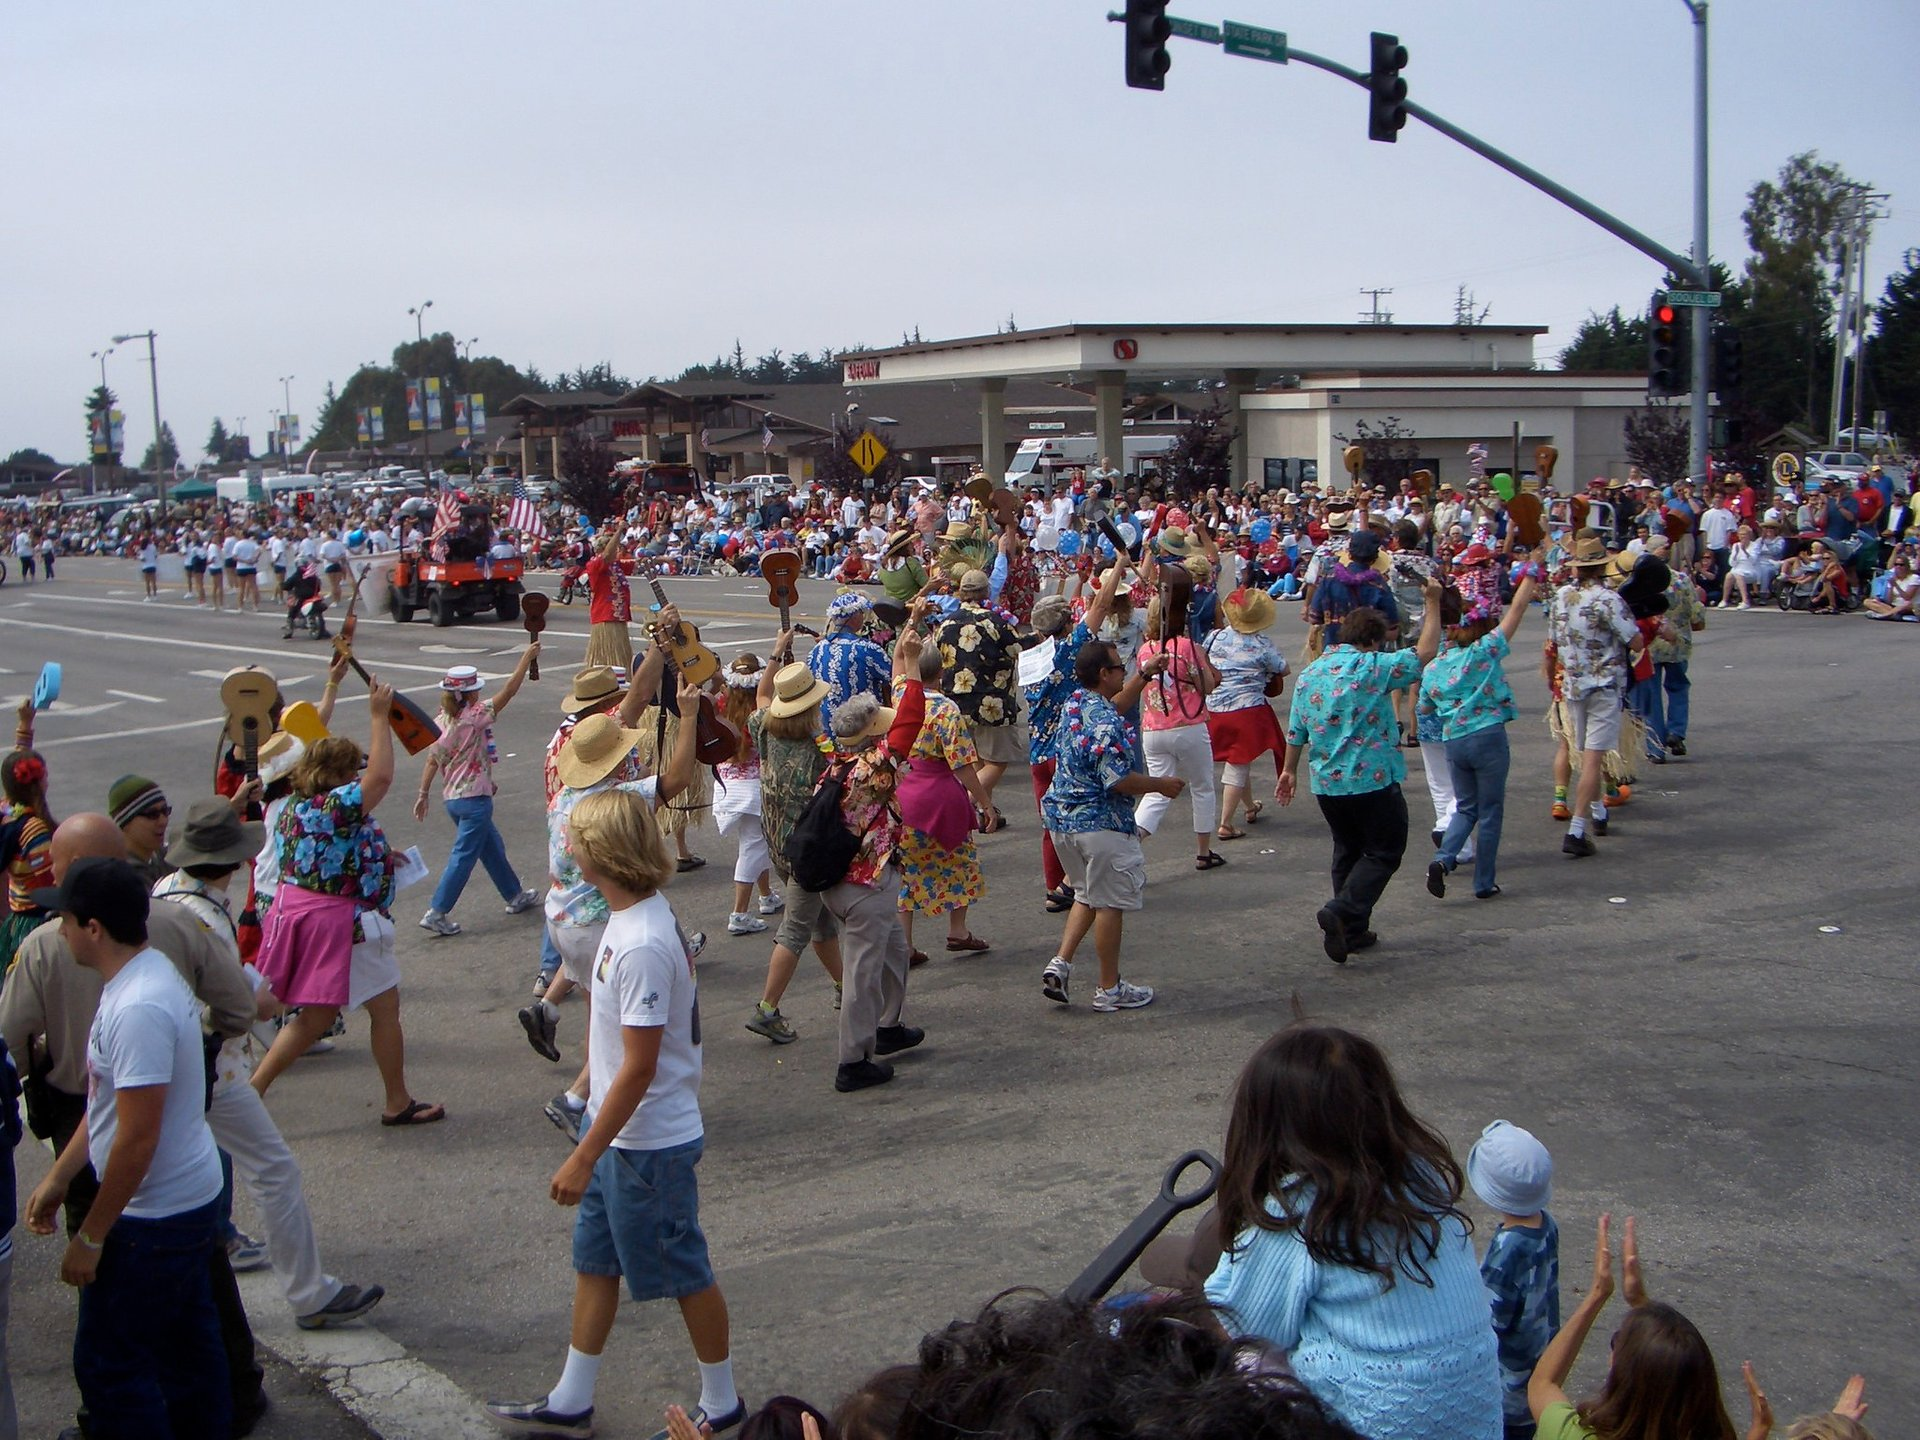 World's Shortest Parade in Aptos, CA 2020